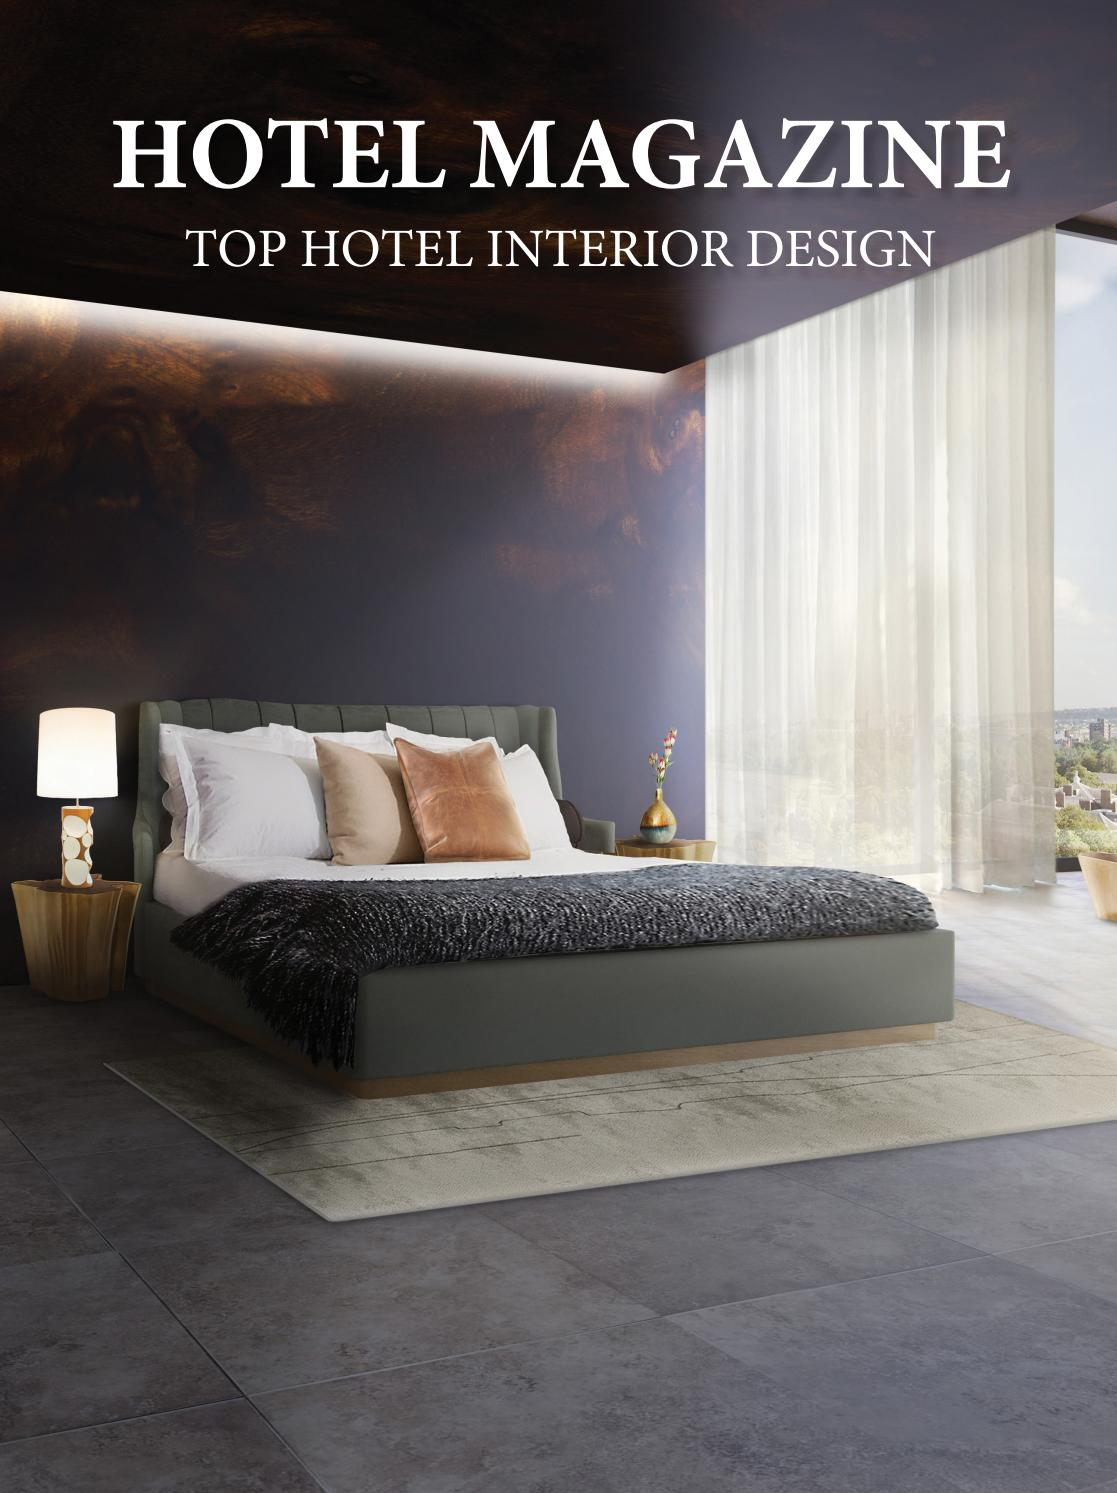 Hotel magazine top hotels interior design by home for Best hotel interior design